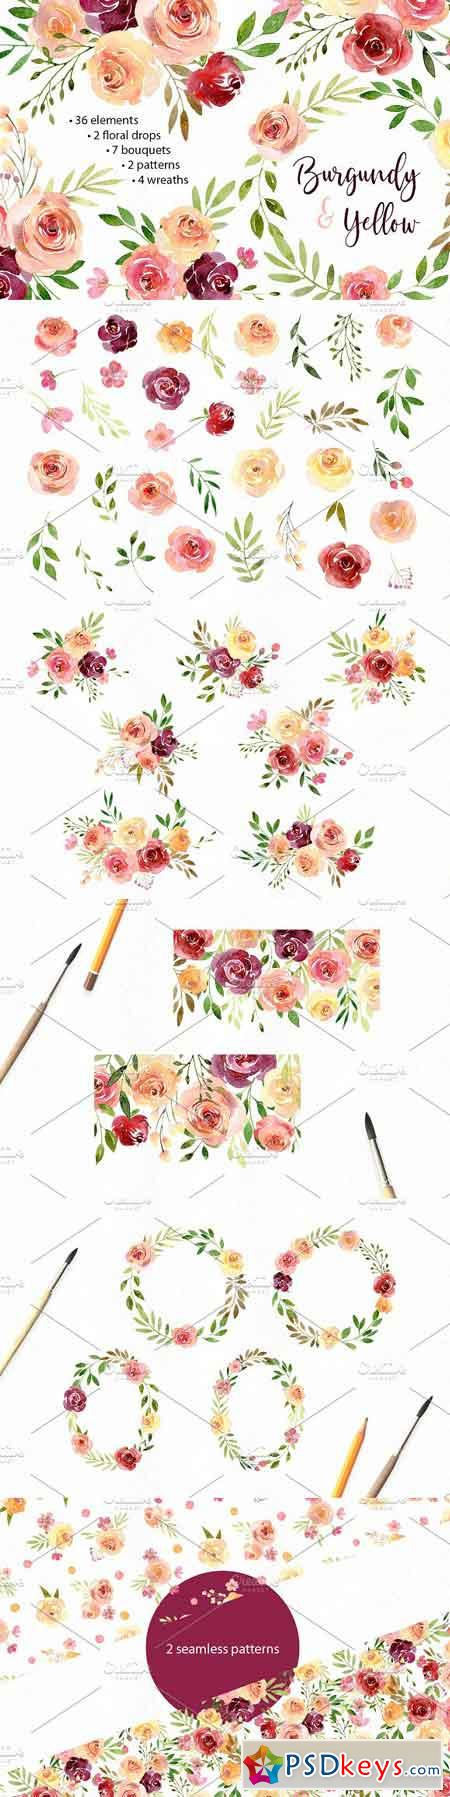 Watercolor Flowers Arrangements PNG 2583222